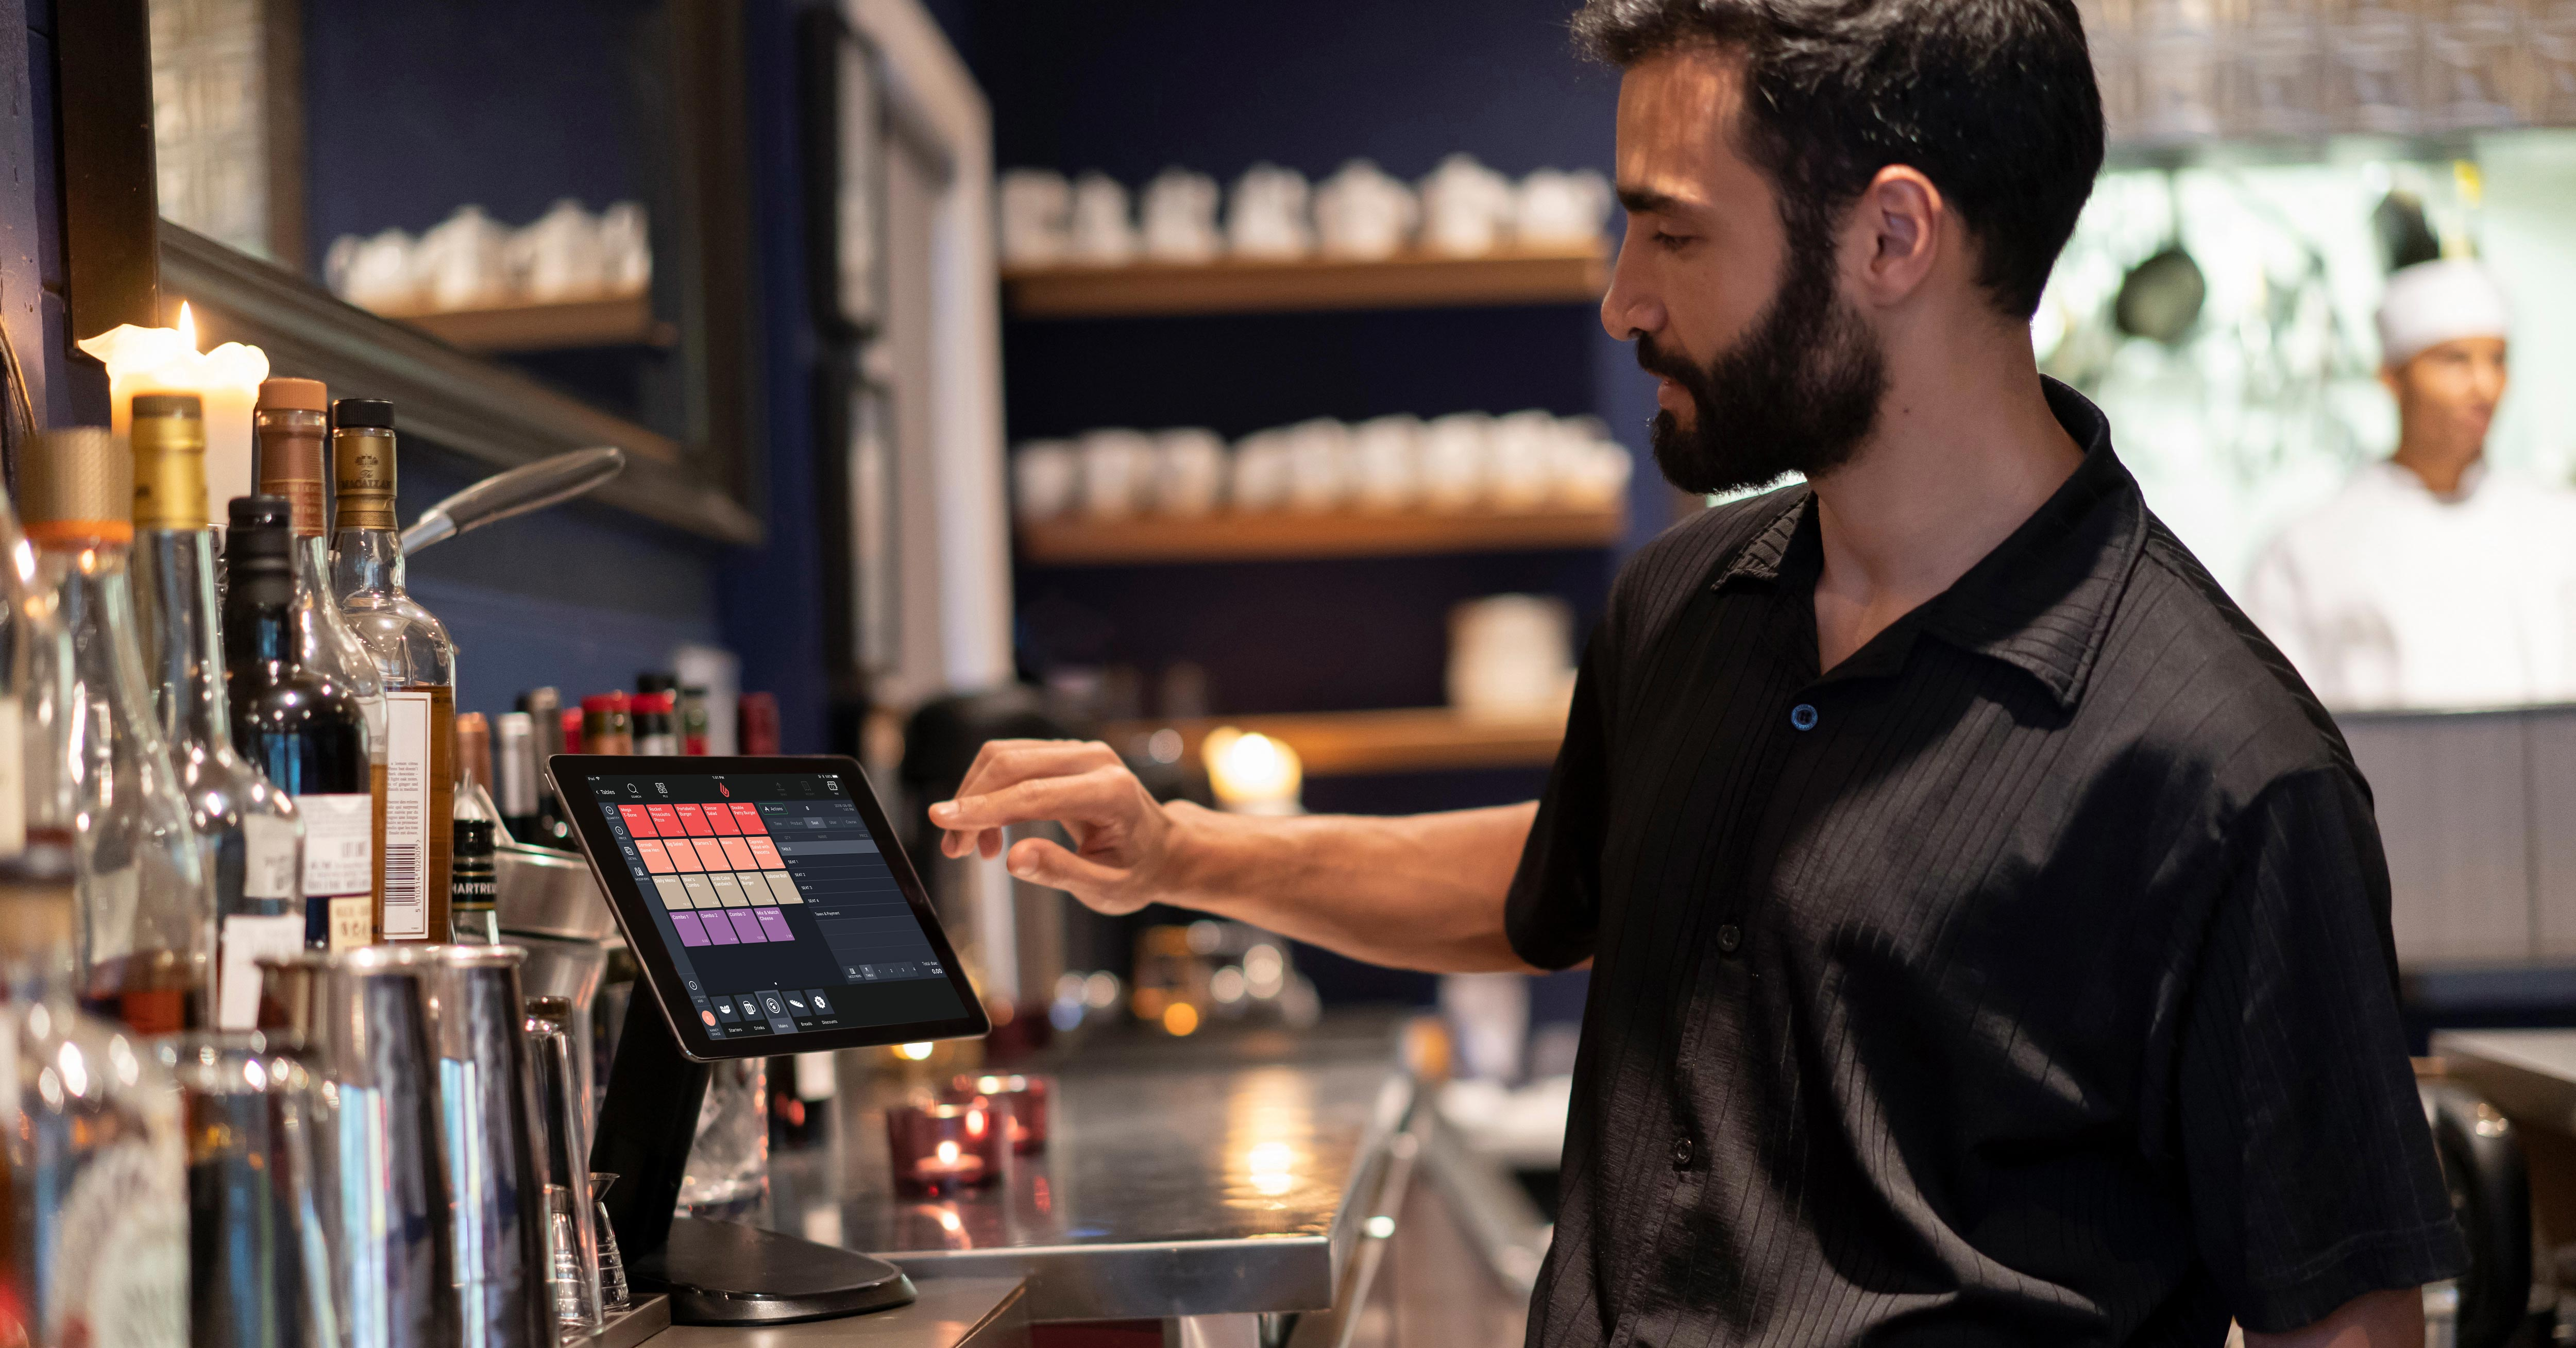 Restaurant owner entering order into an ipad pos solutions